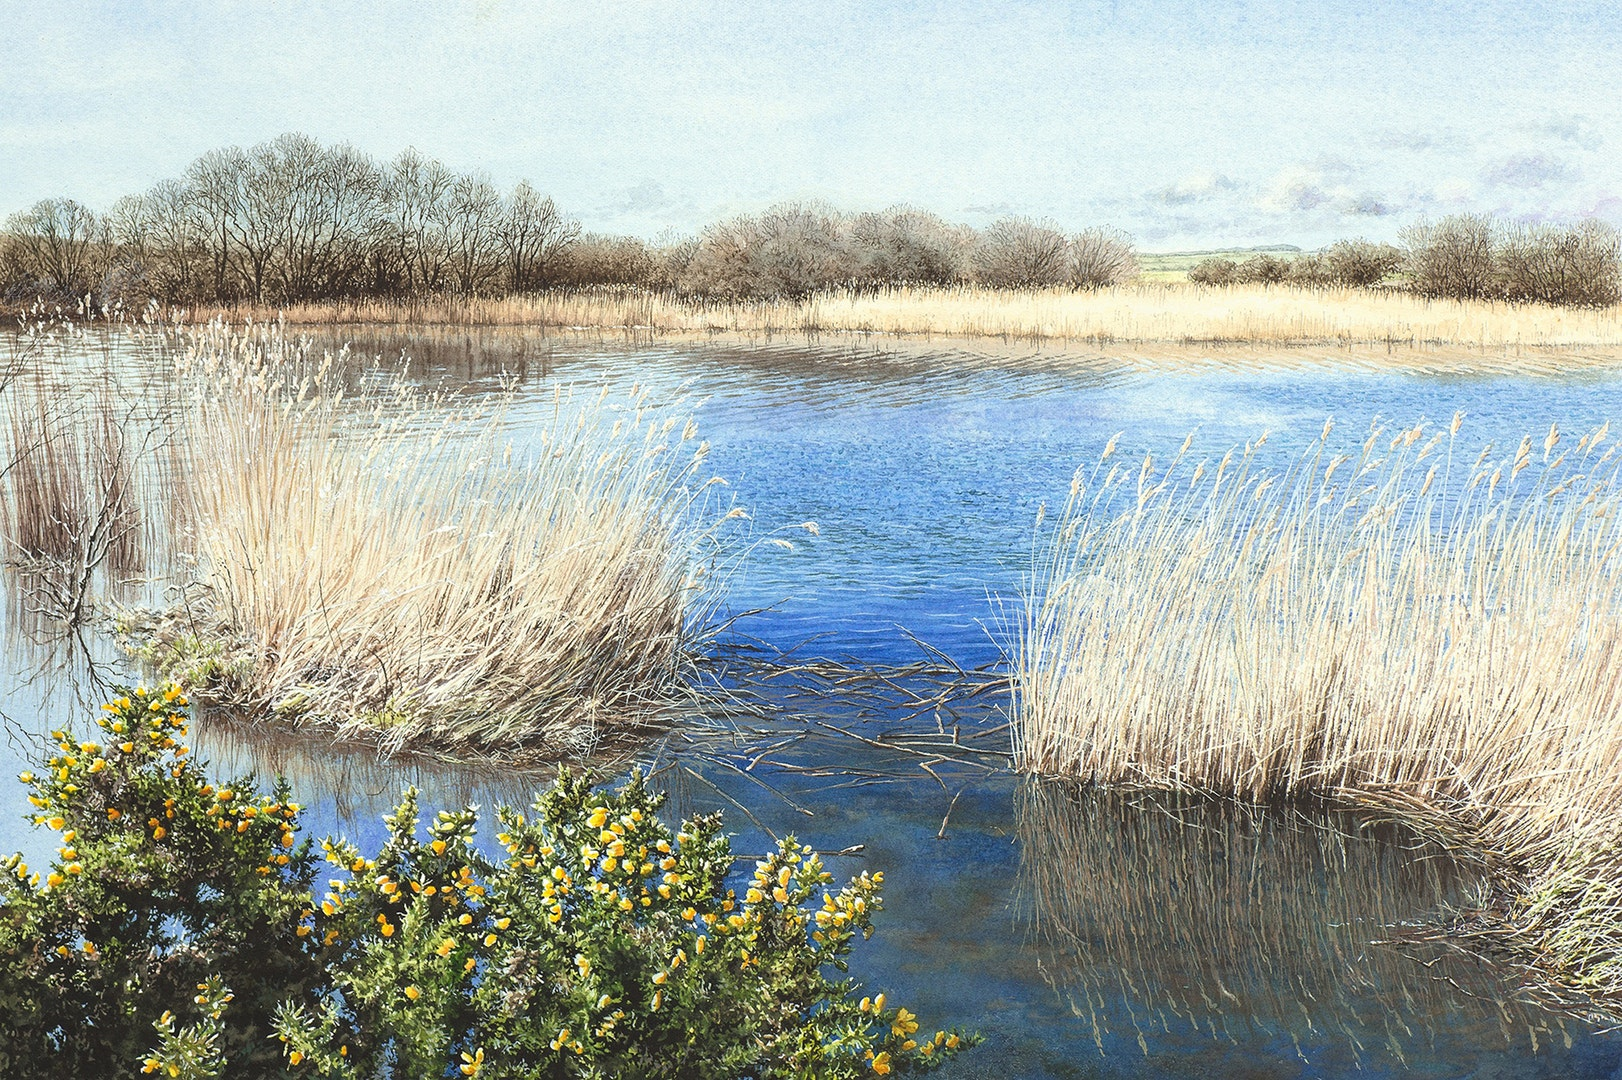 'Wind on the Wetlands', Felicity Flutter, Watercolour on paper, 24 x 36 cm